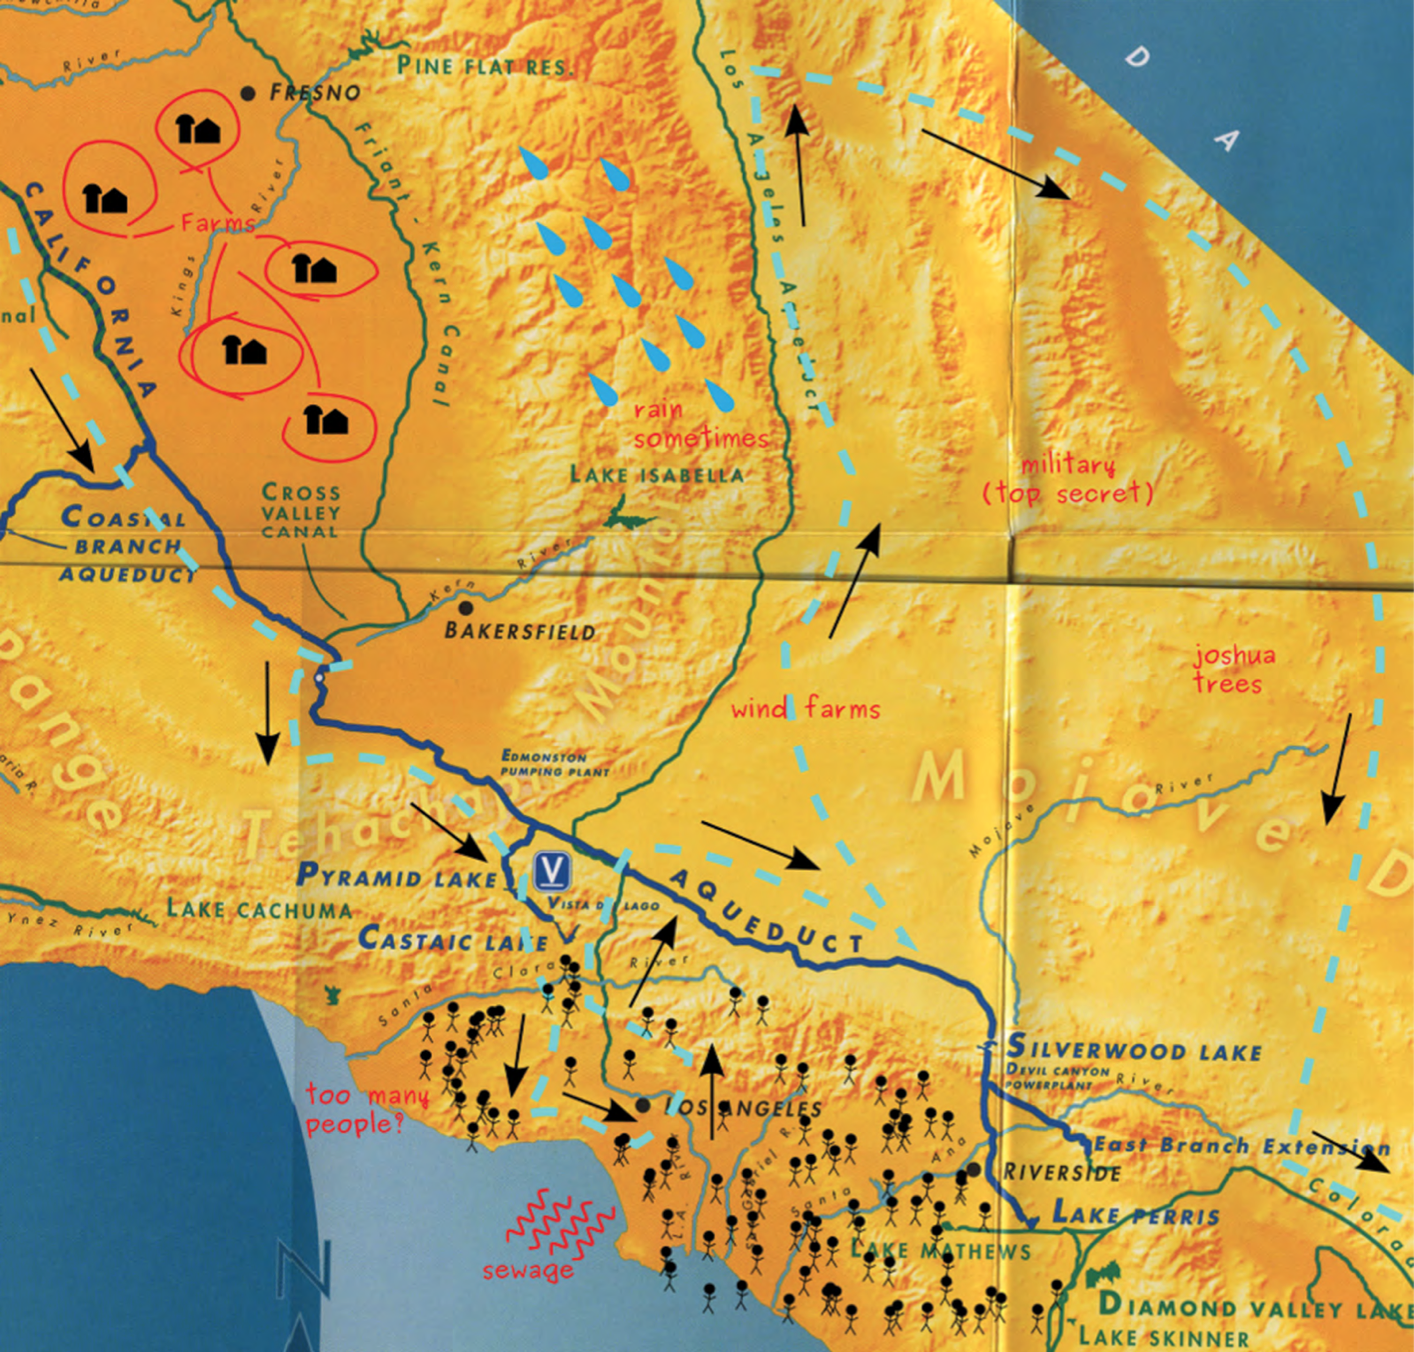 A mocked up copy of the DWR map. Courtesy of the author.